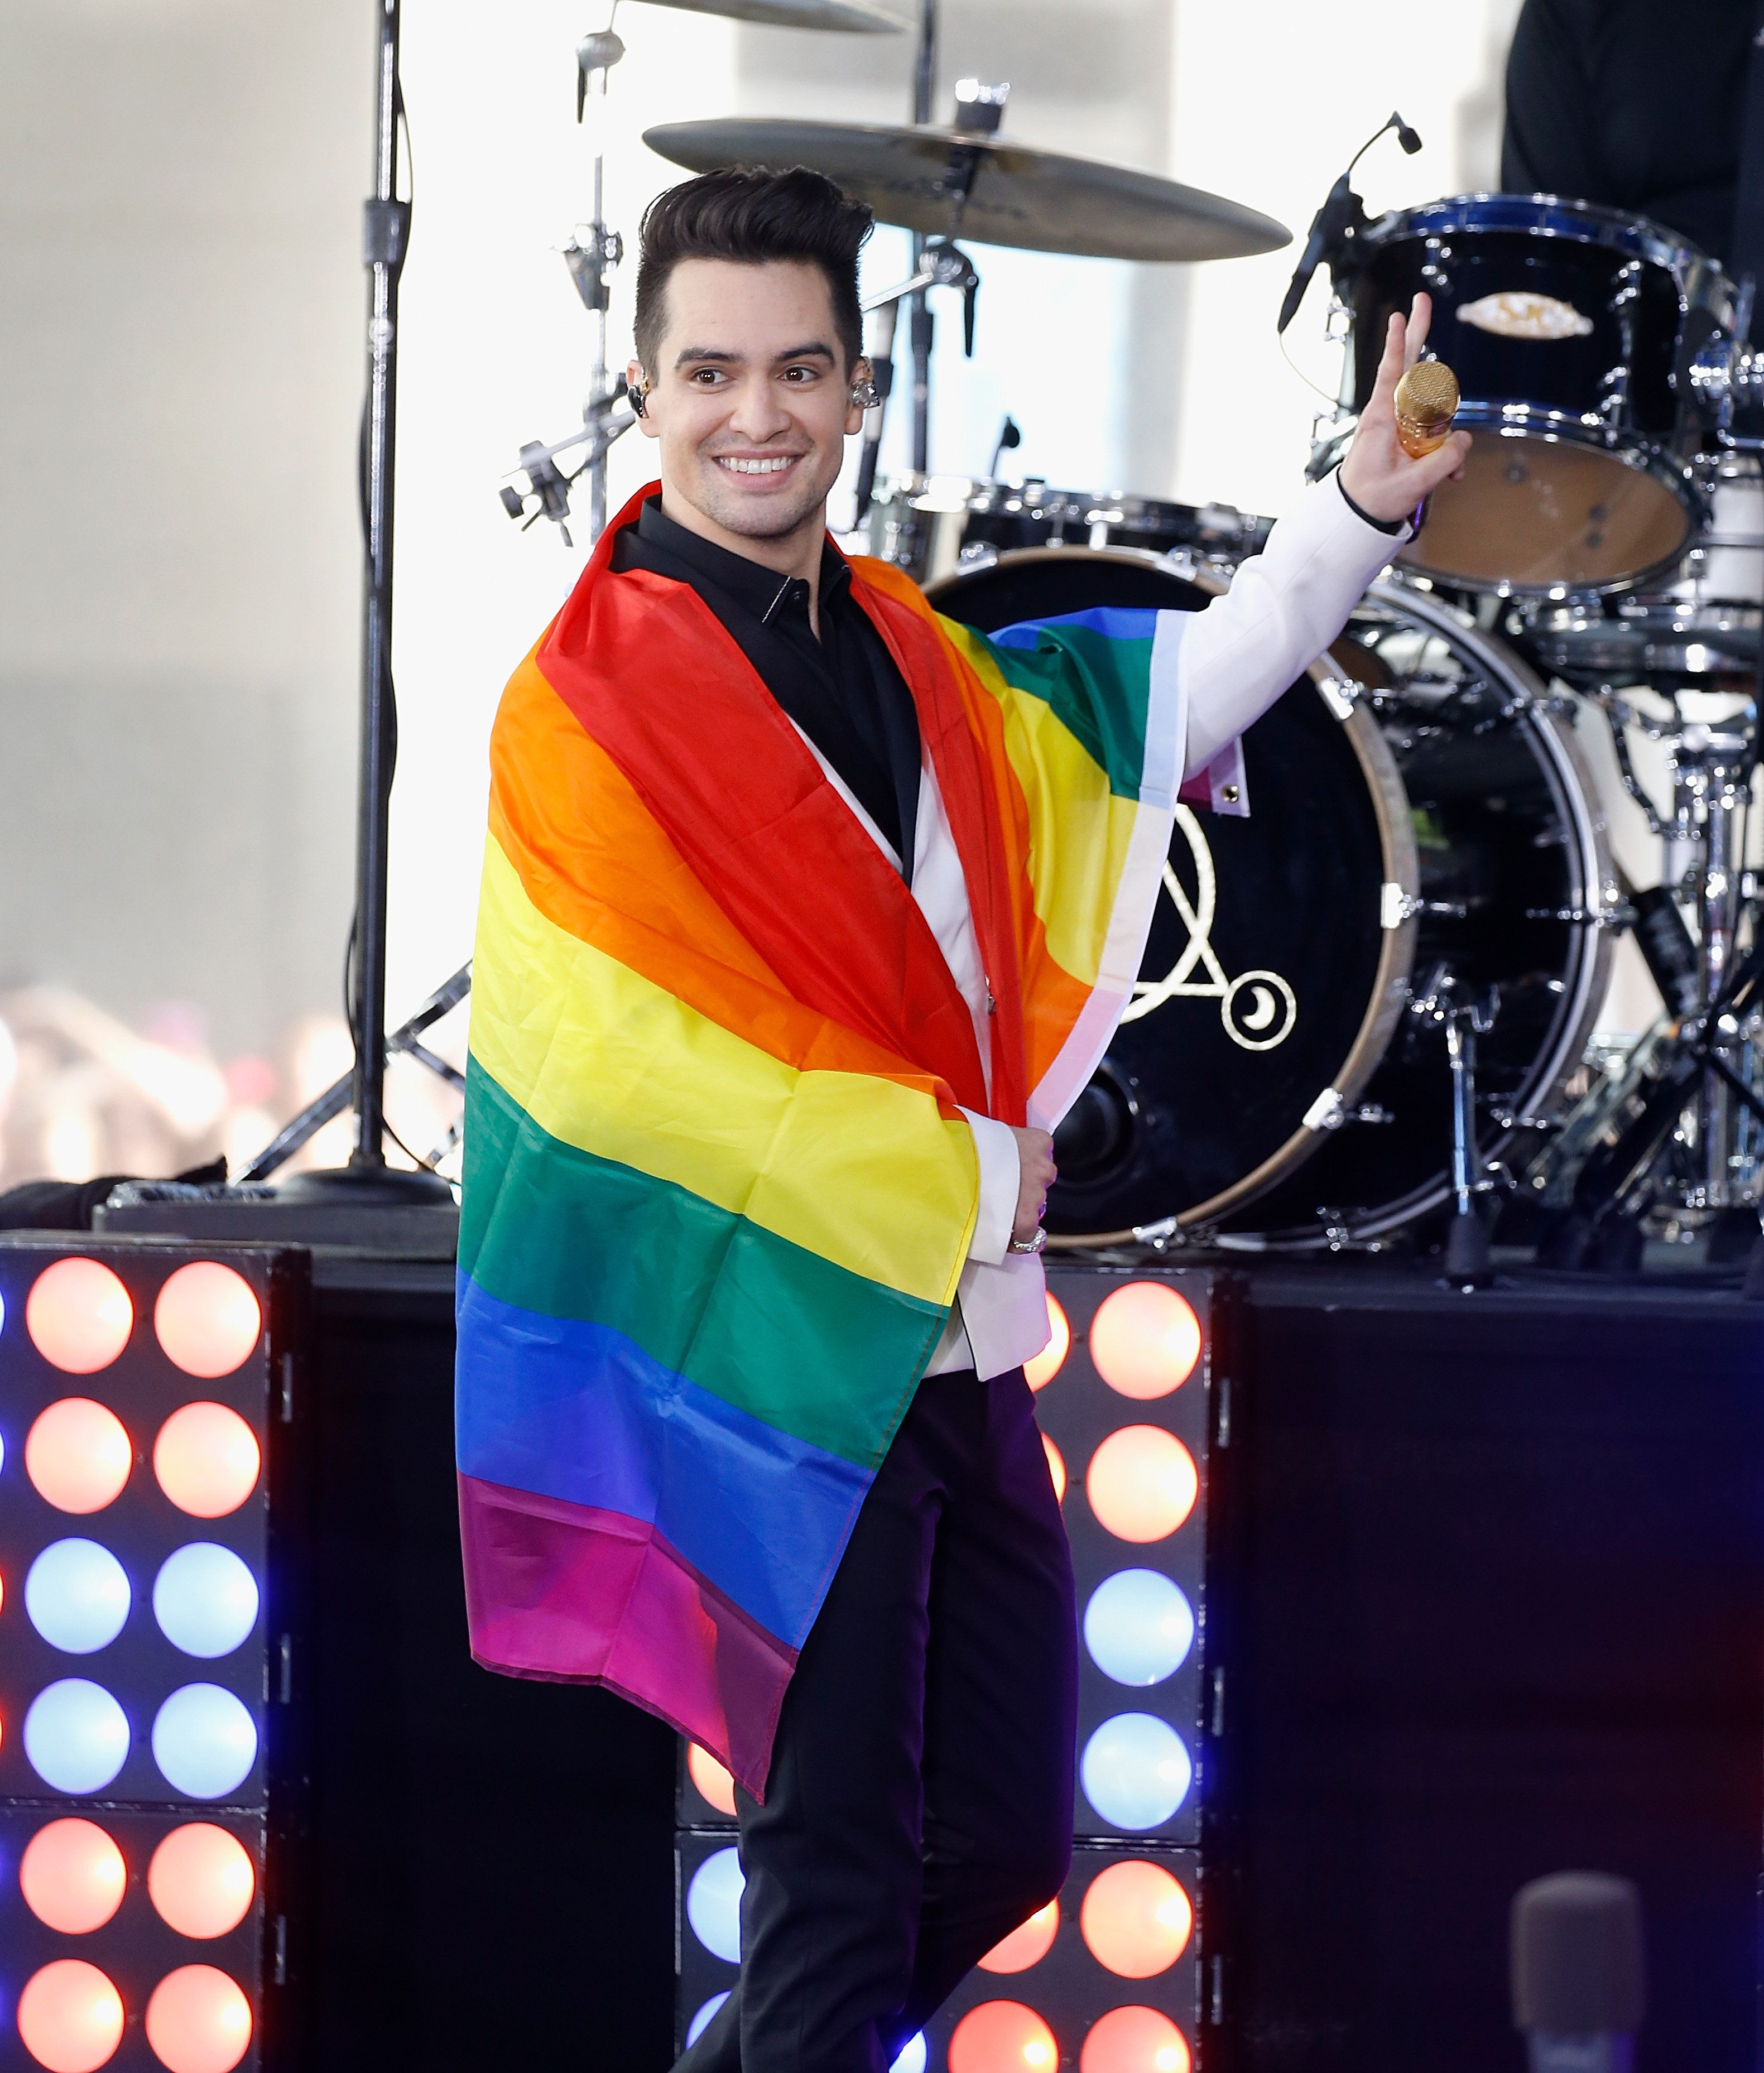 Panic! At The Disco frontman Brendon Urie comes out as pansexual